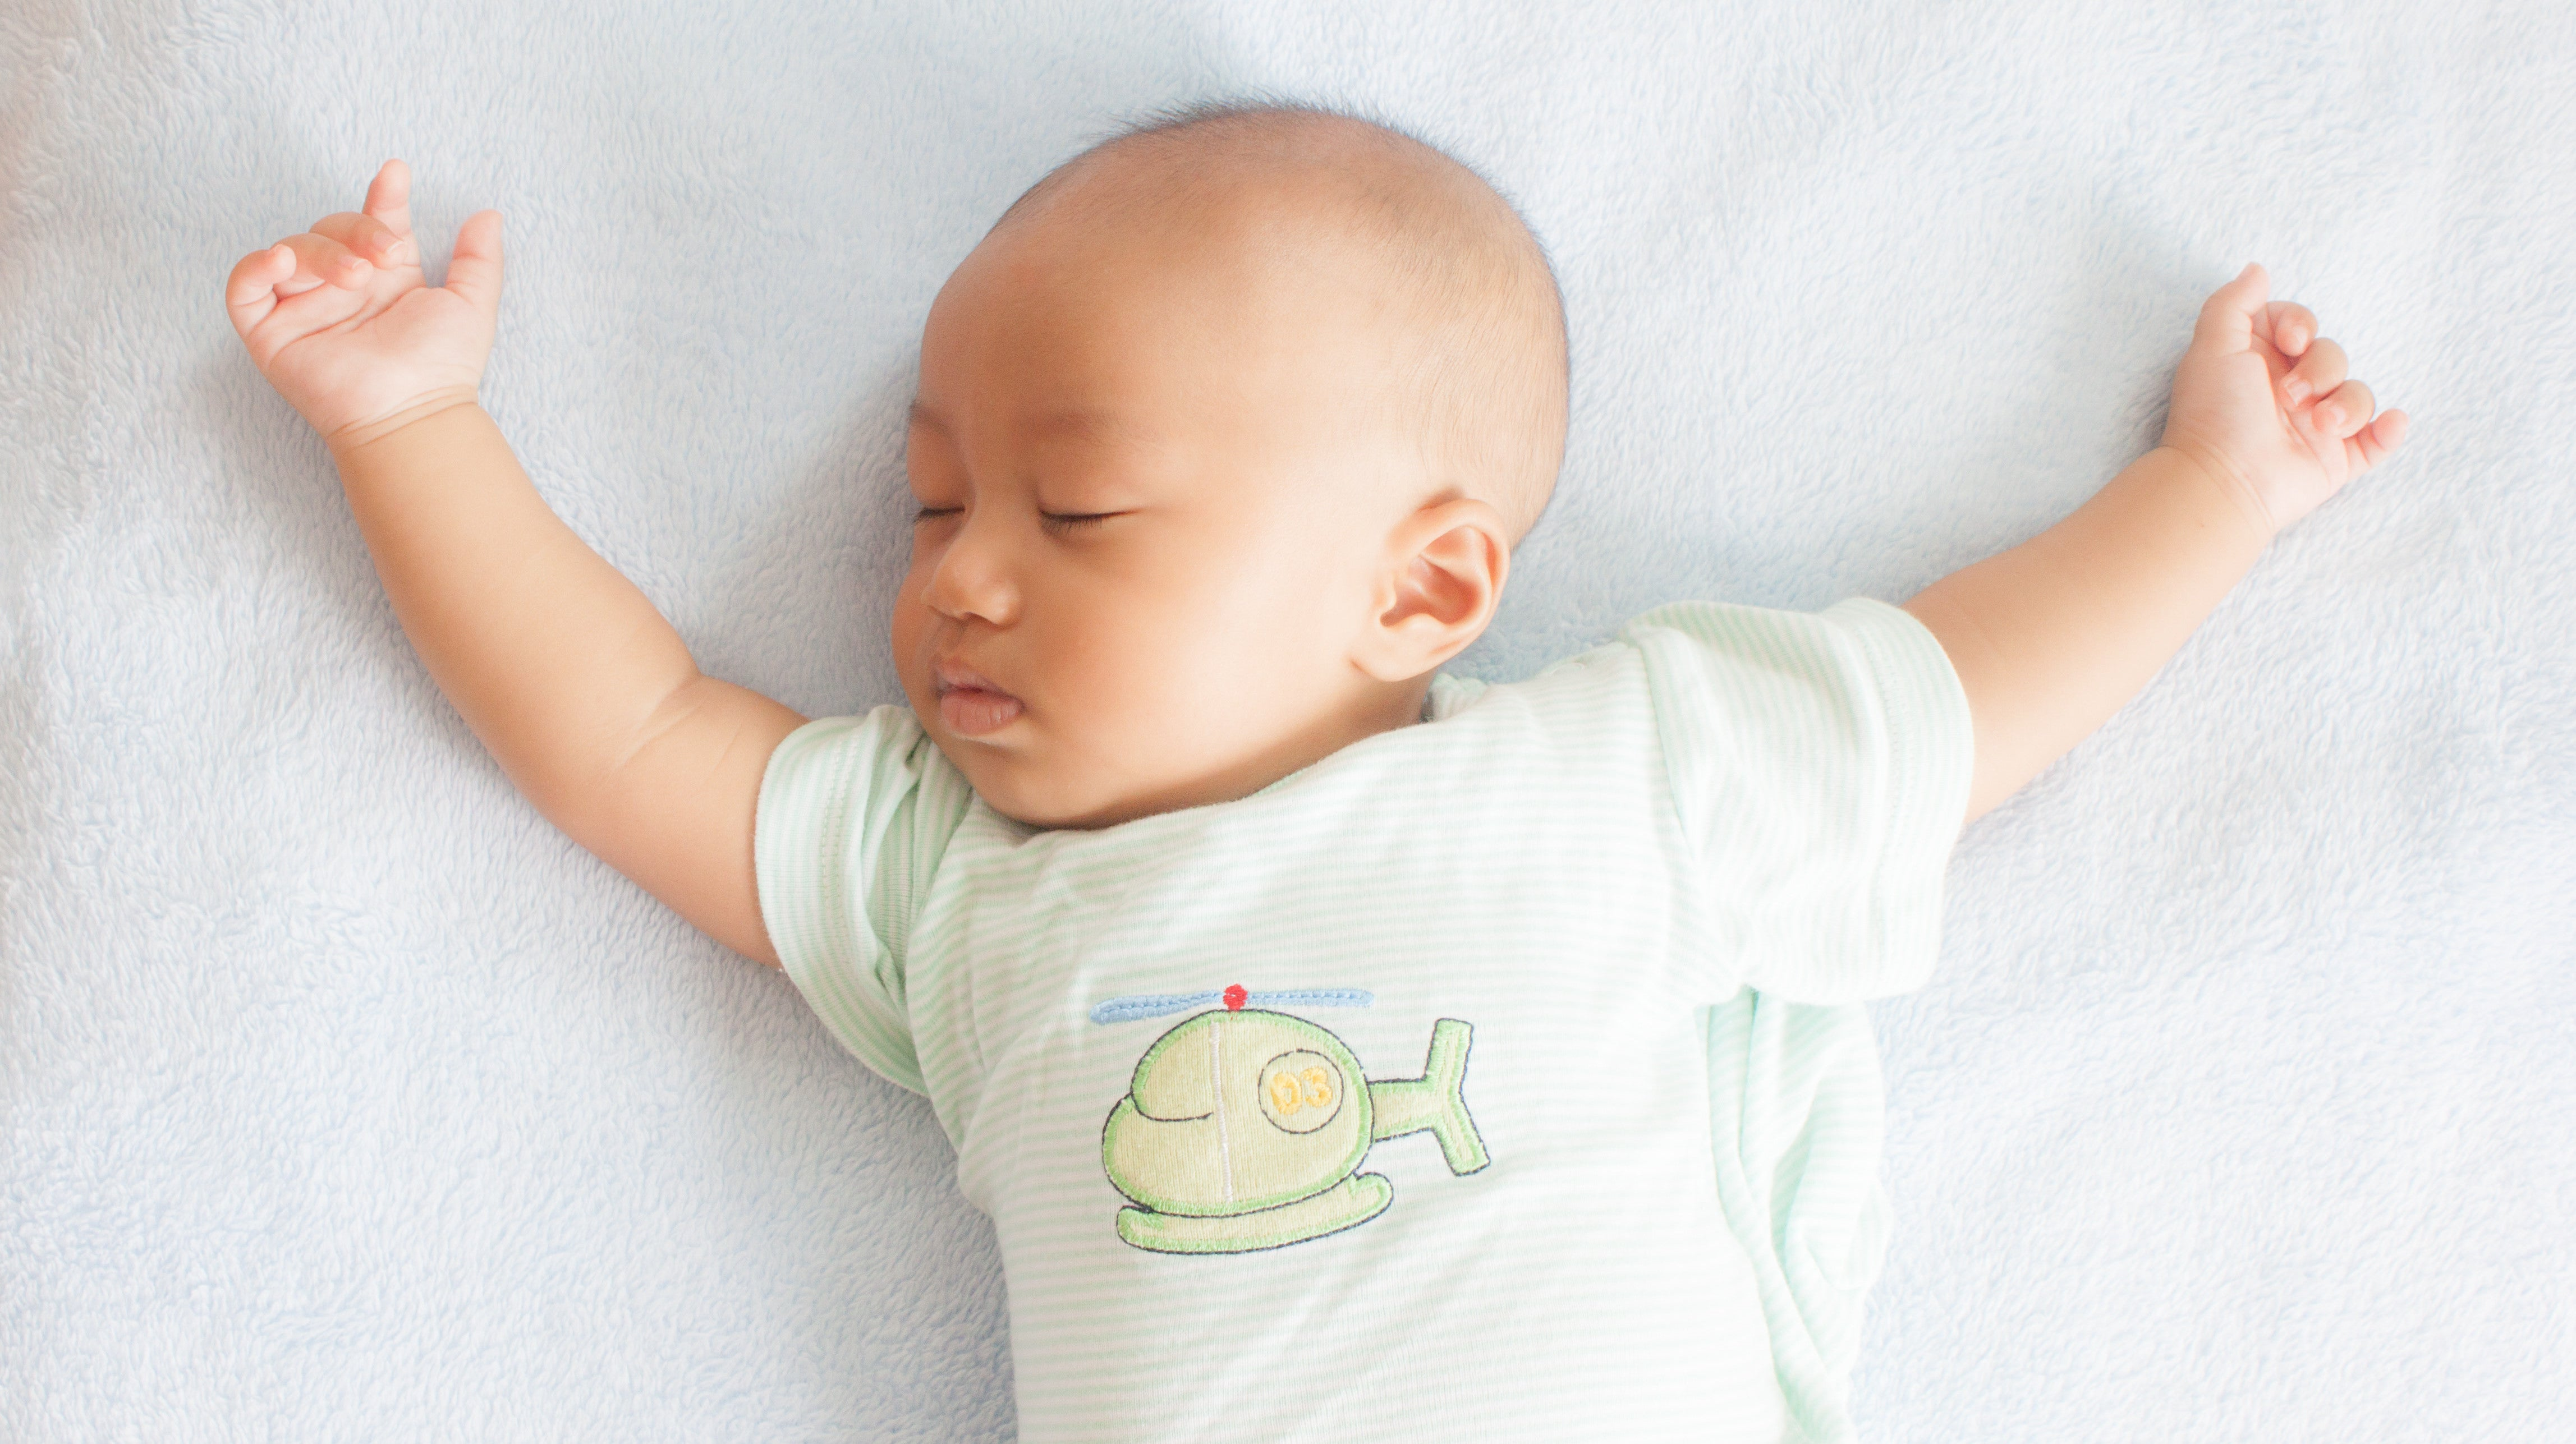 This Is The Safest Way For Your Baby To Sleep